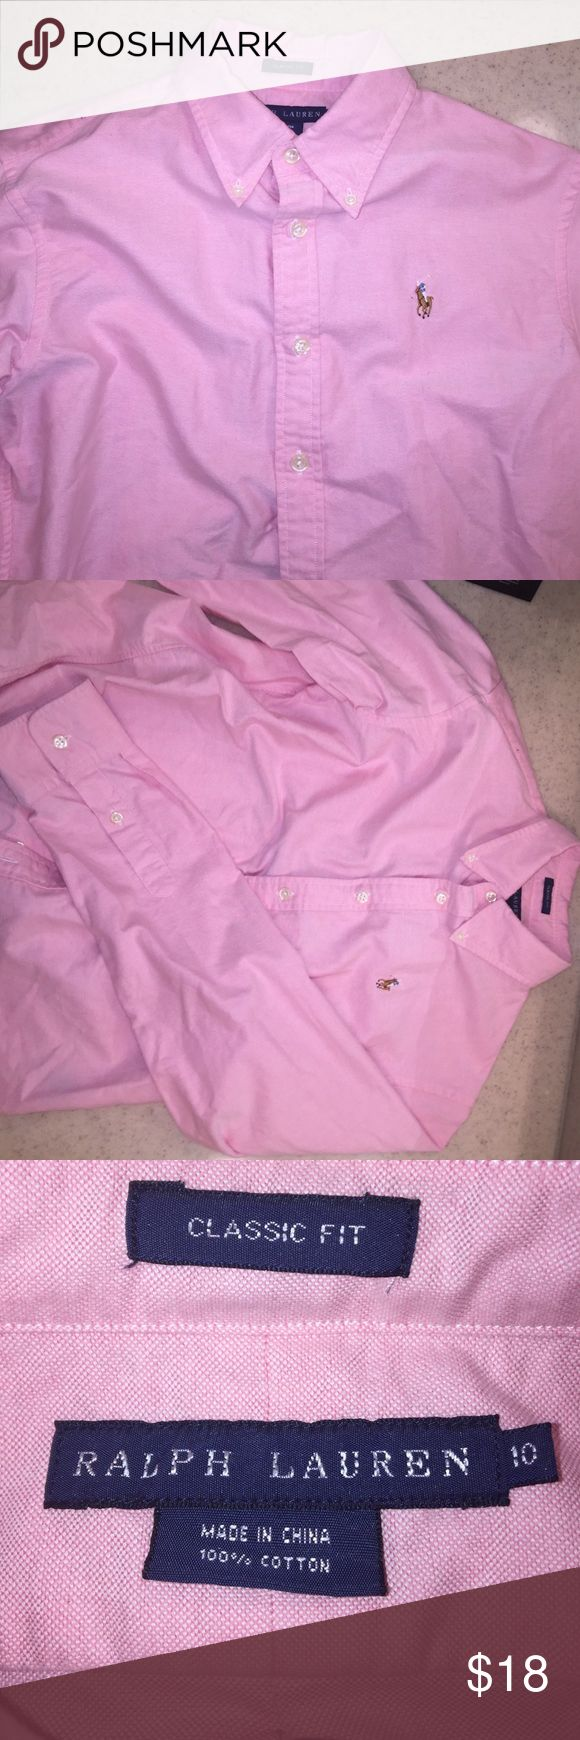 Ralph Lauren - pink -classic fit-long sleeve polo Ralph Lauren. Women's. Classic Fit. Size 10. Long sleeve polo. Great condition! Ralph Lauren Tops Button Down Shirts